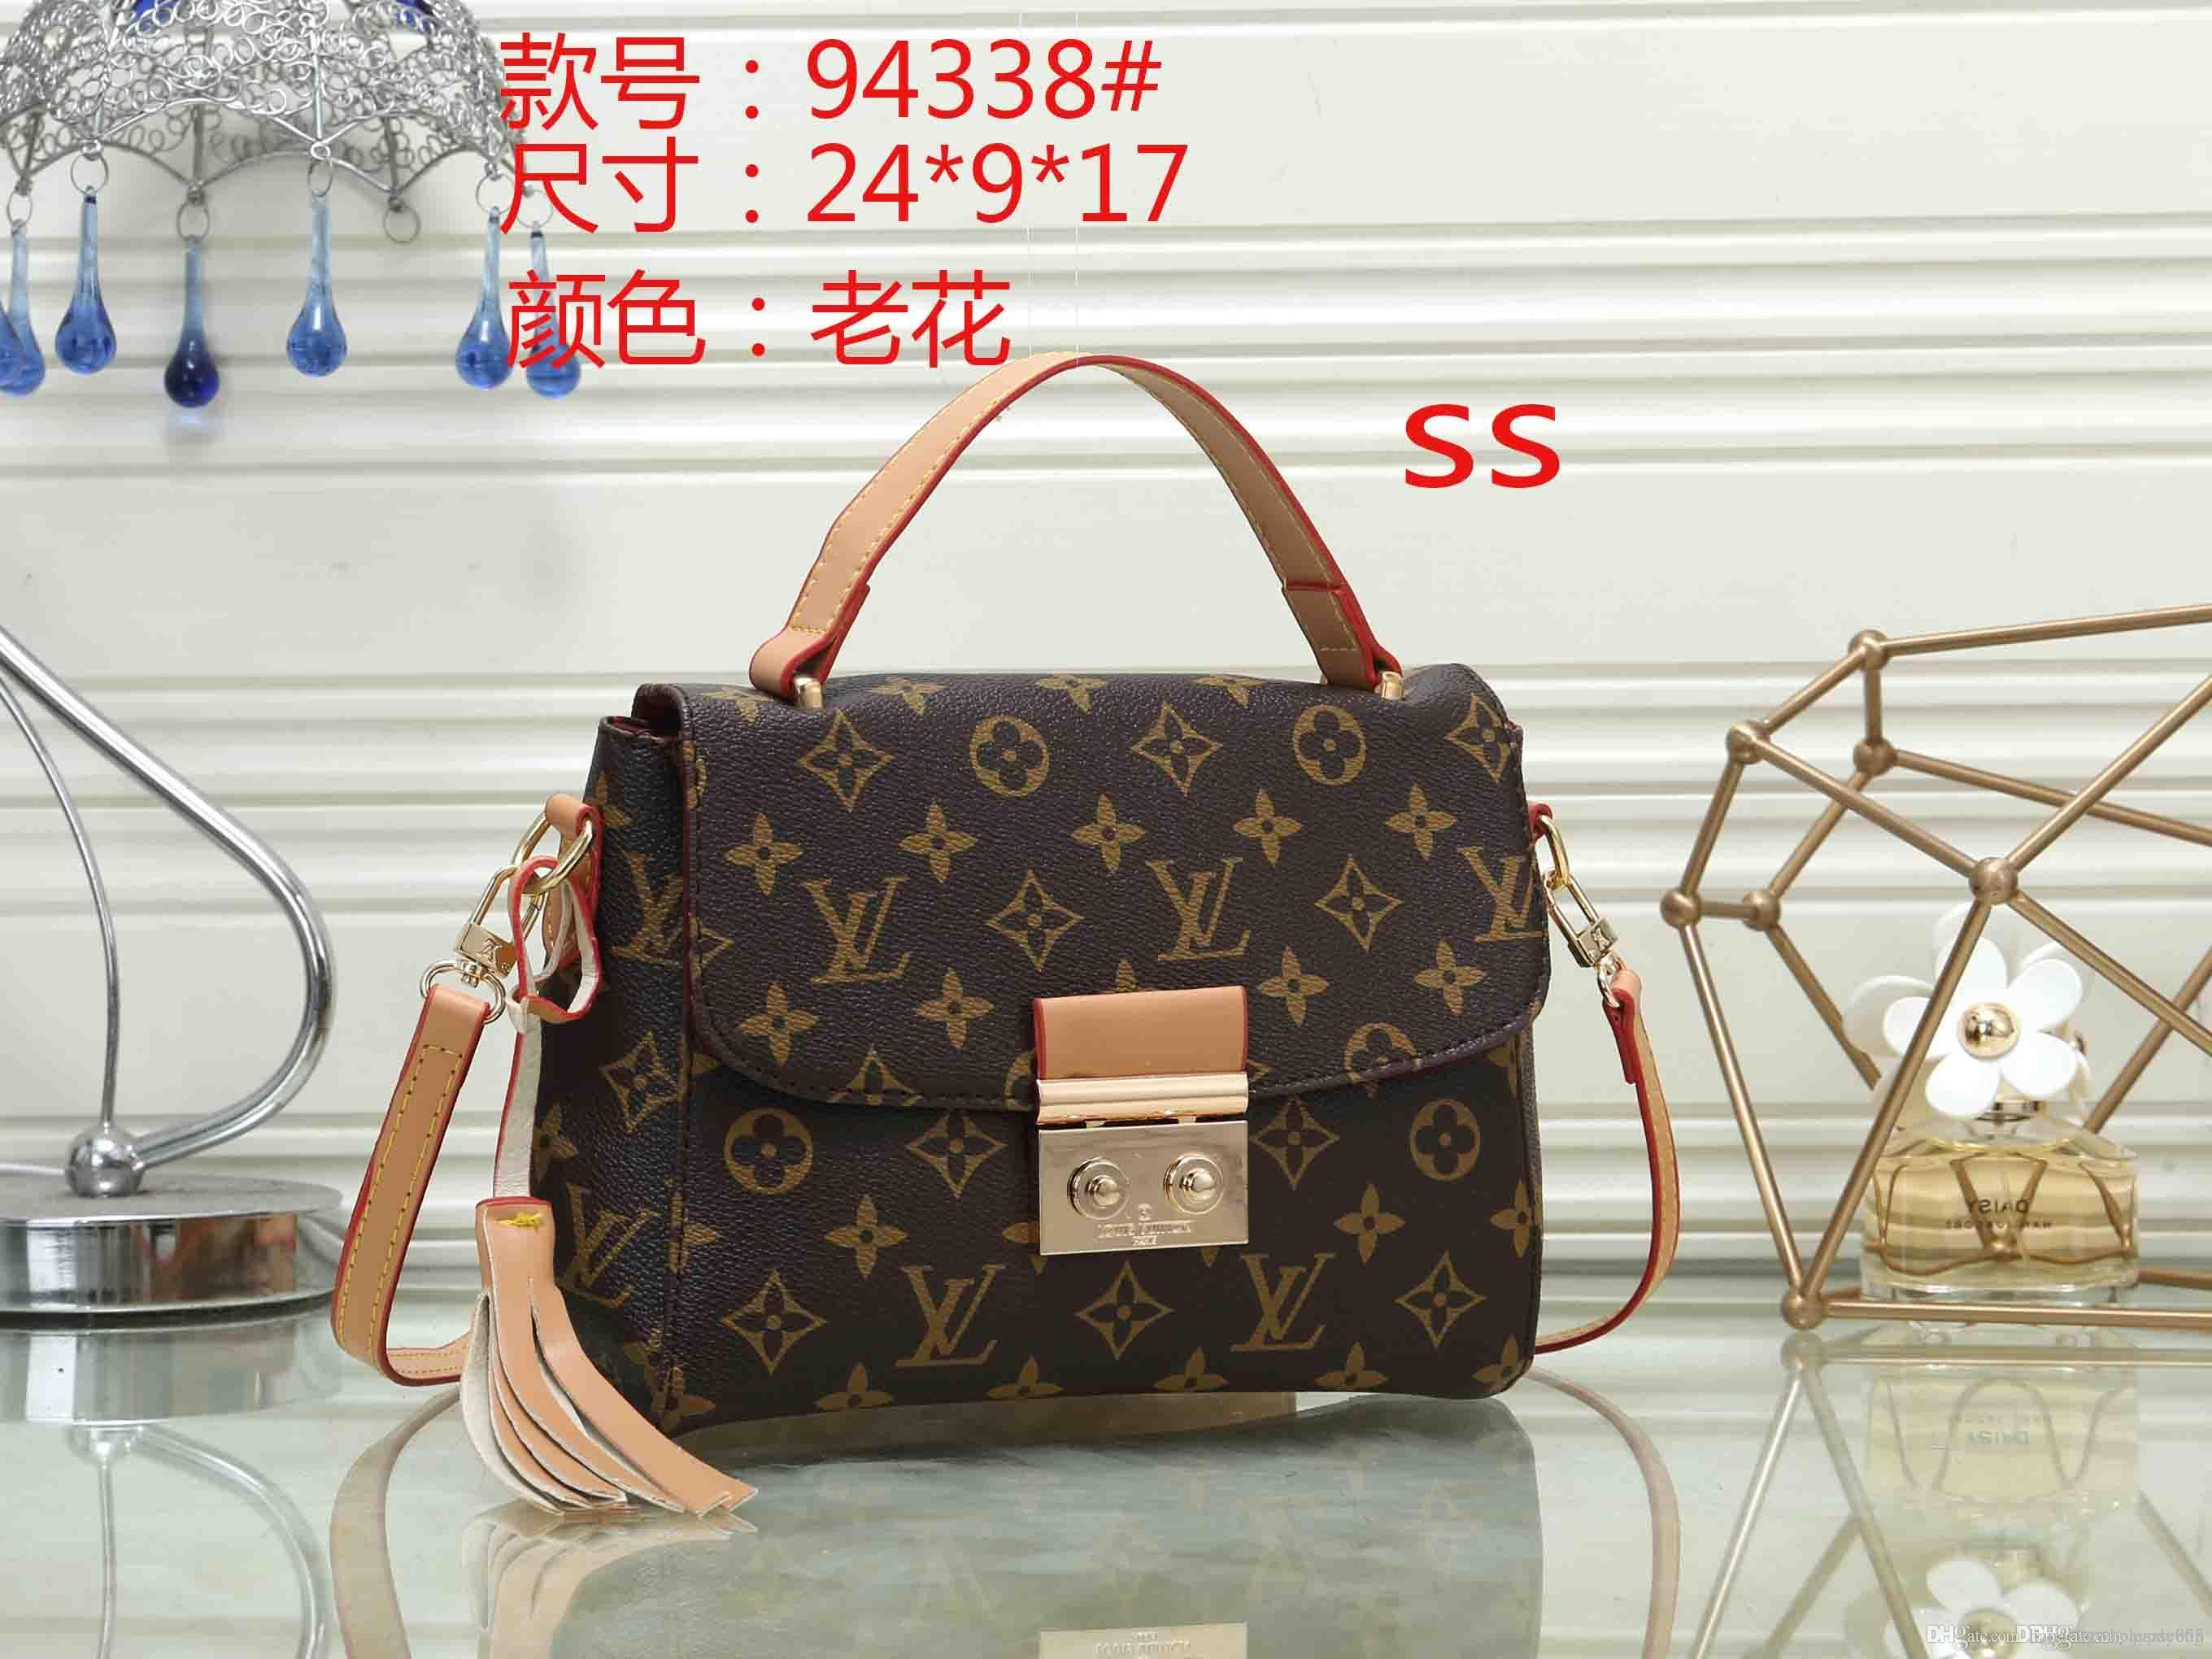 WWW 94338 Best price High Quality women Ladies Single handbag tote Shoulder backpack bag purse wallet